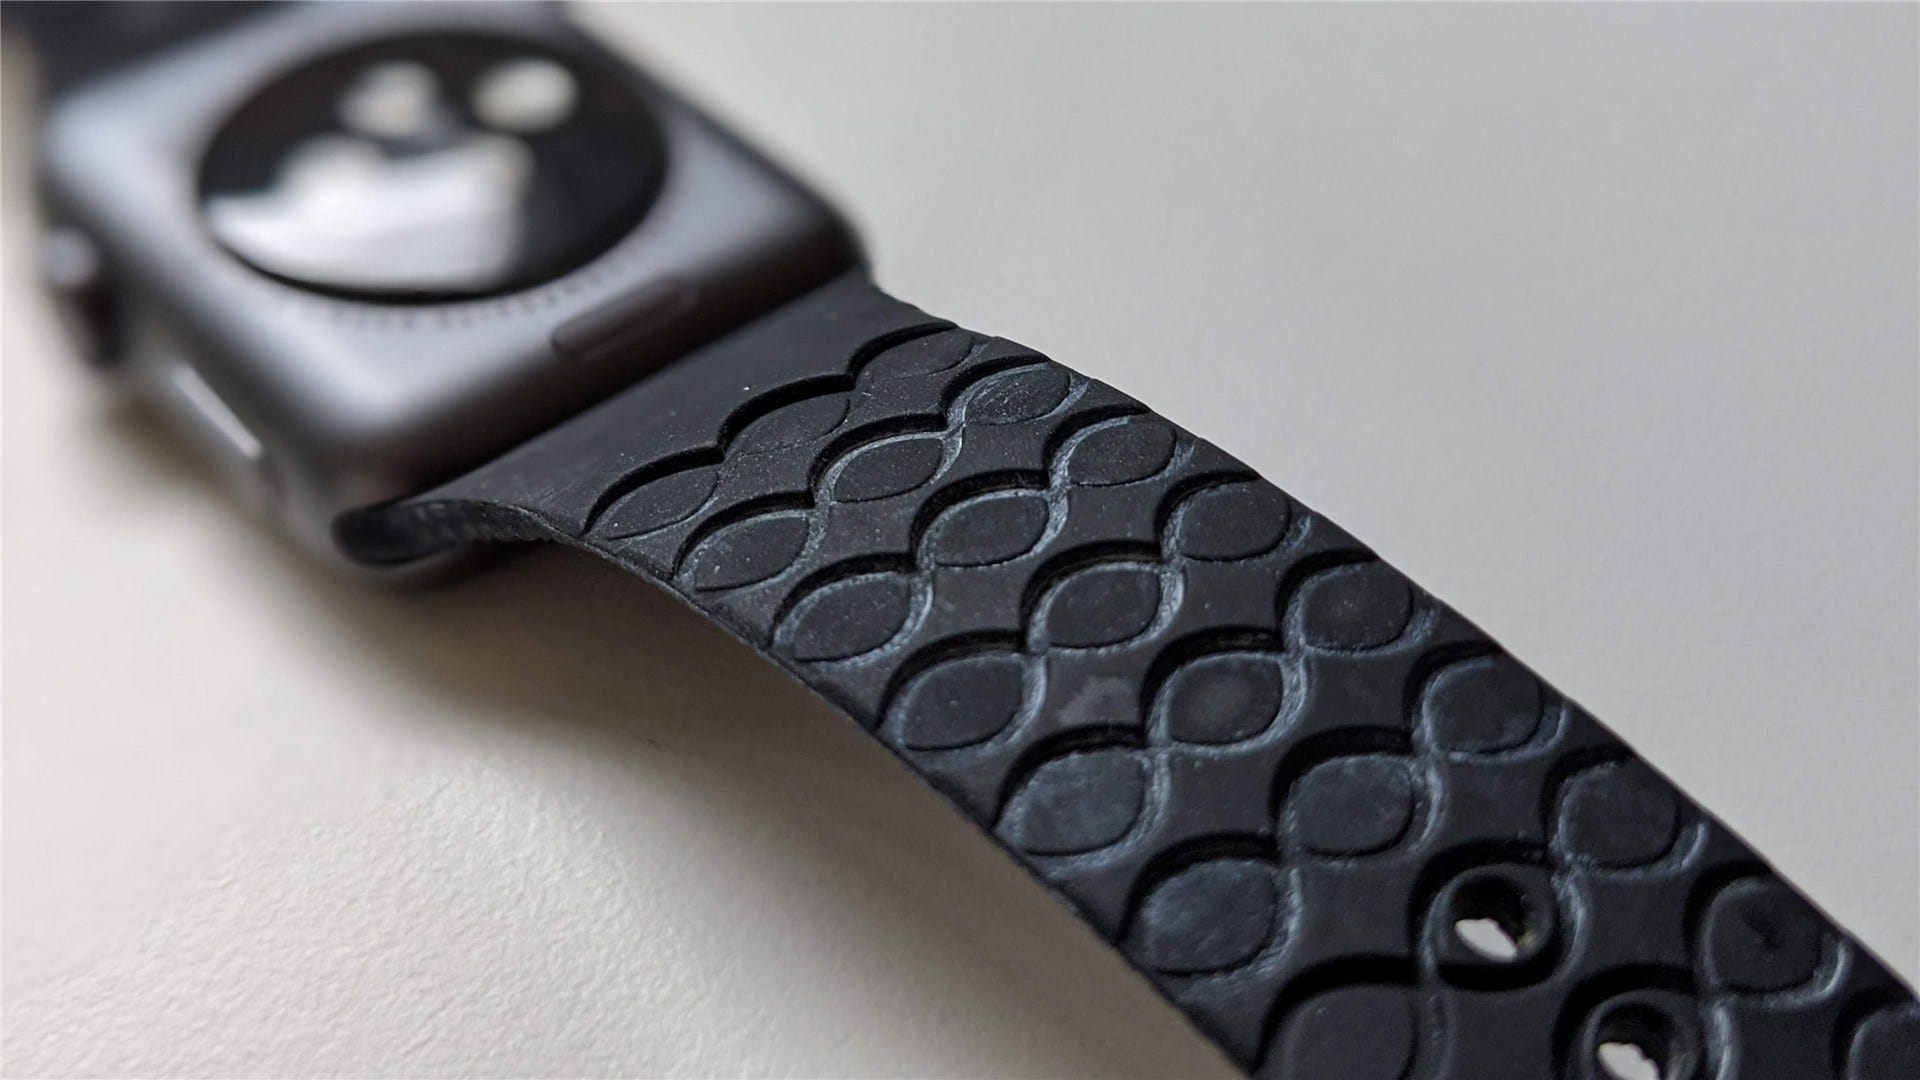 A closer look at the Apple Watch band's grooves